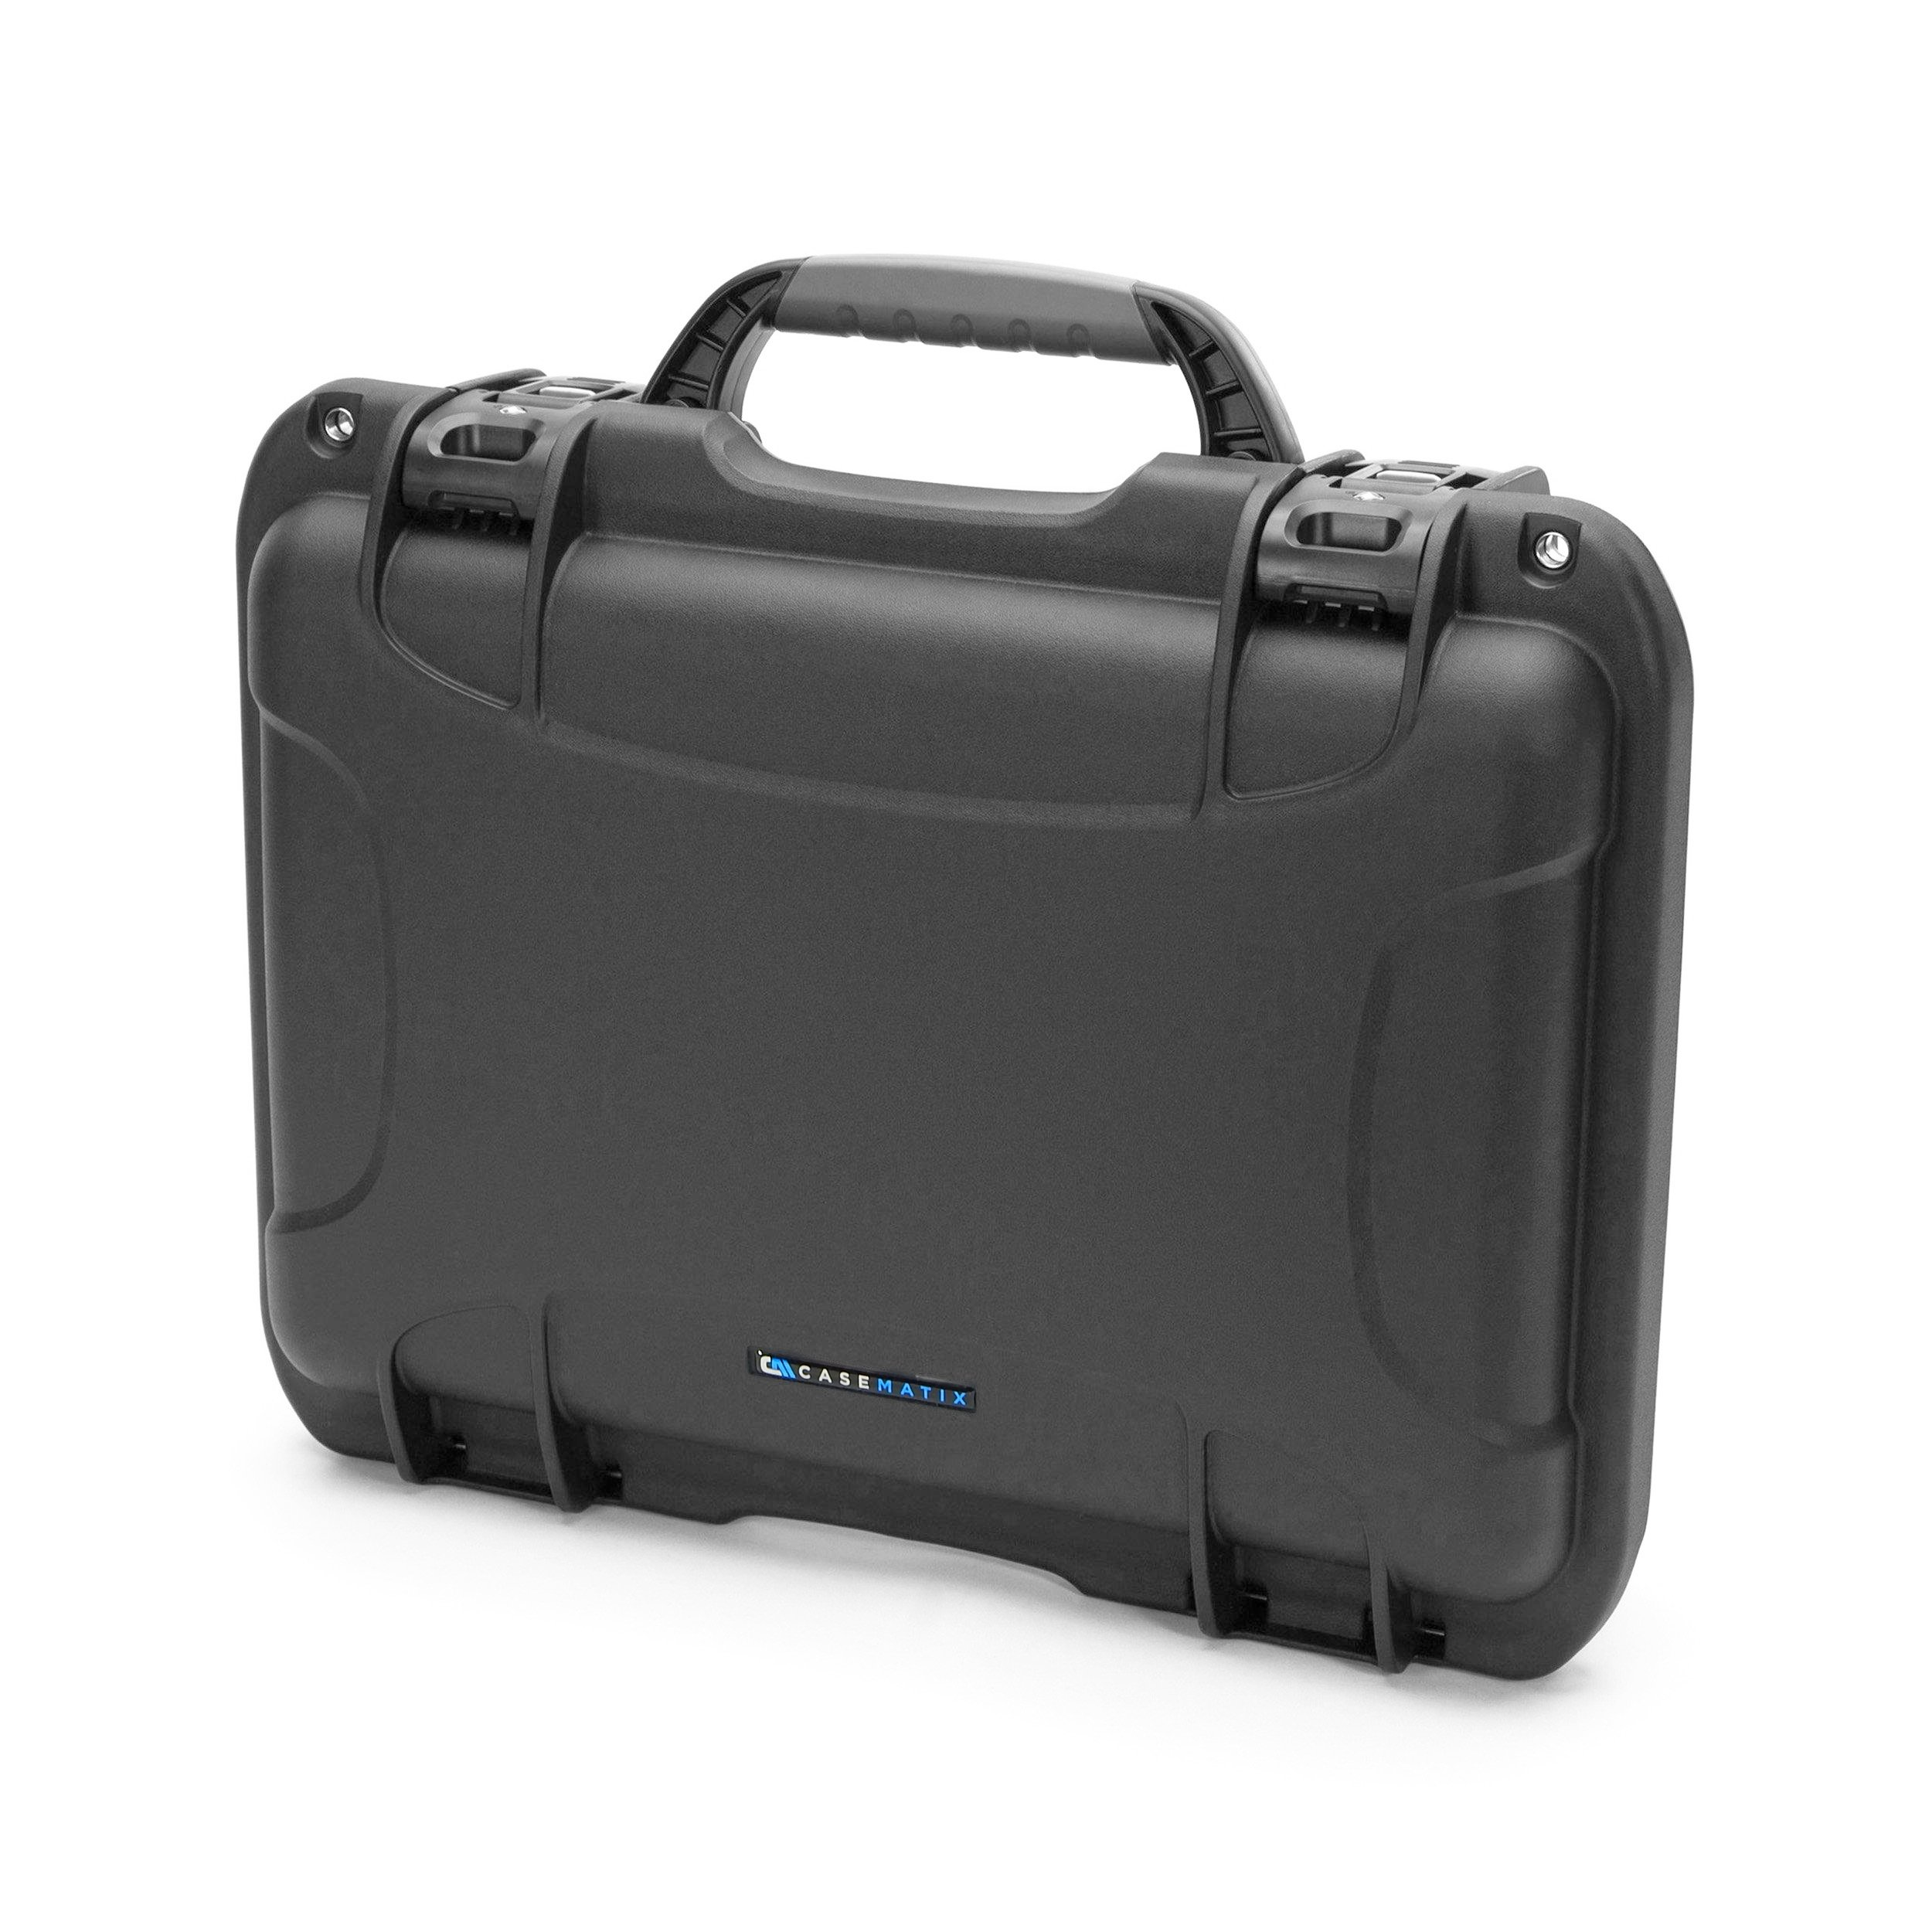 CASEMATIX ELITE Customizable Portable Printer Carry Case Fits Pixma iP110 and Workforce WF-100 – IP6x Waterproof Crushproof Travel Case for Wireless Mobile Printer , Ink Cartridges , Power Cables